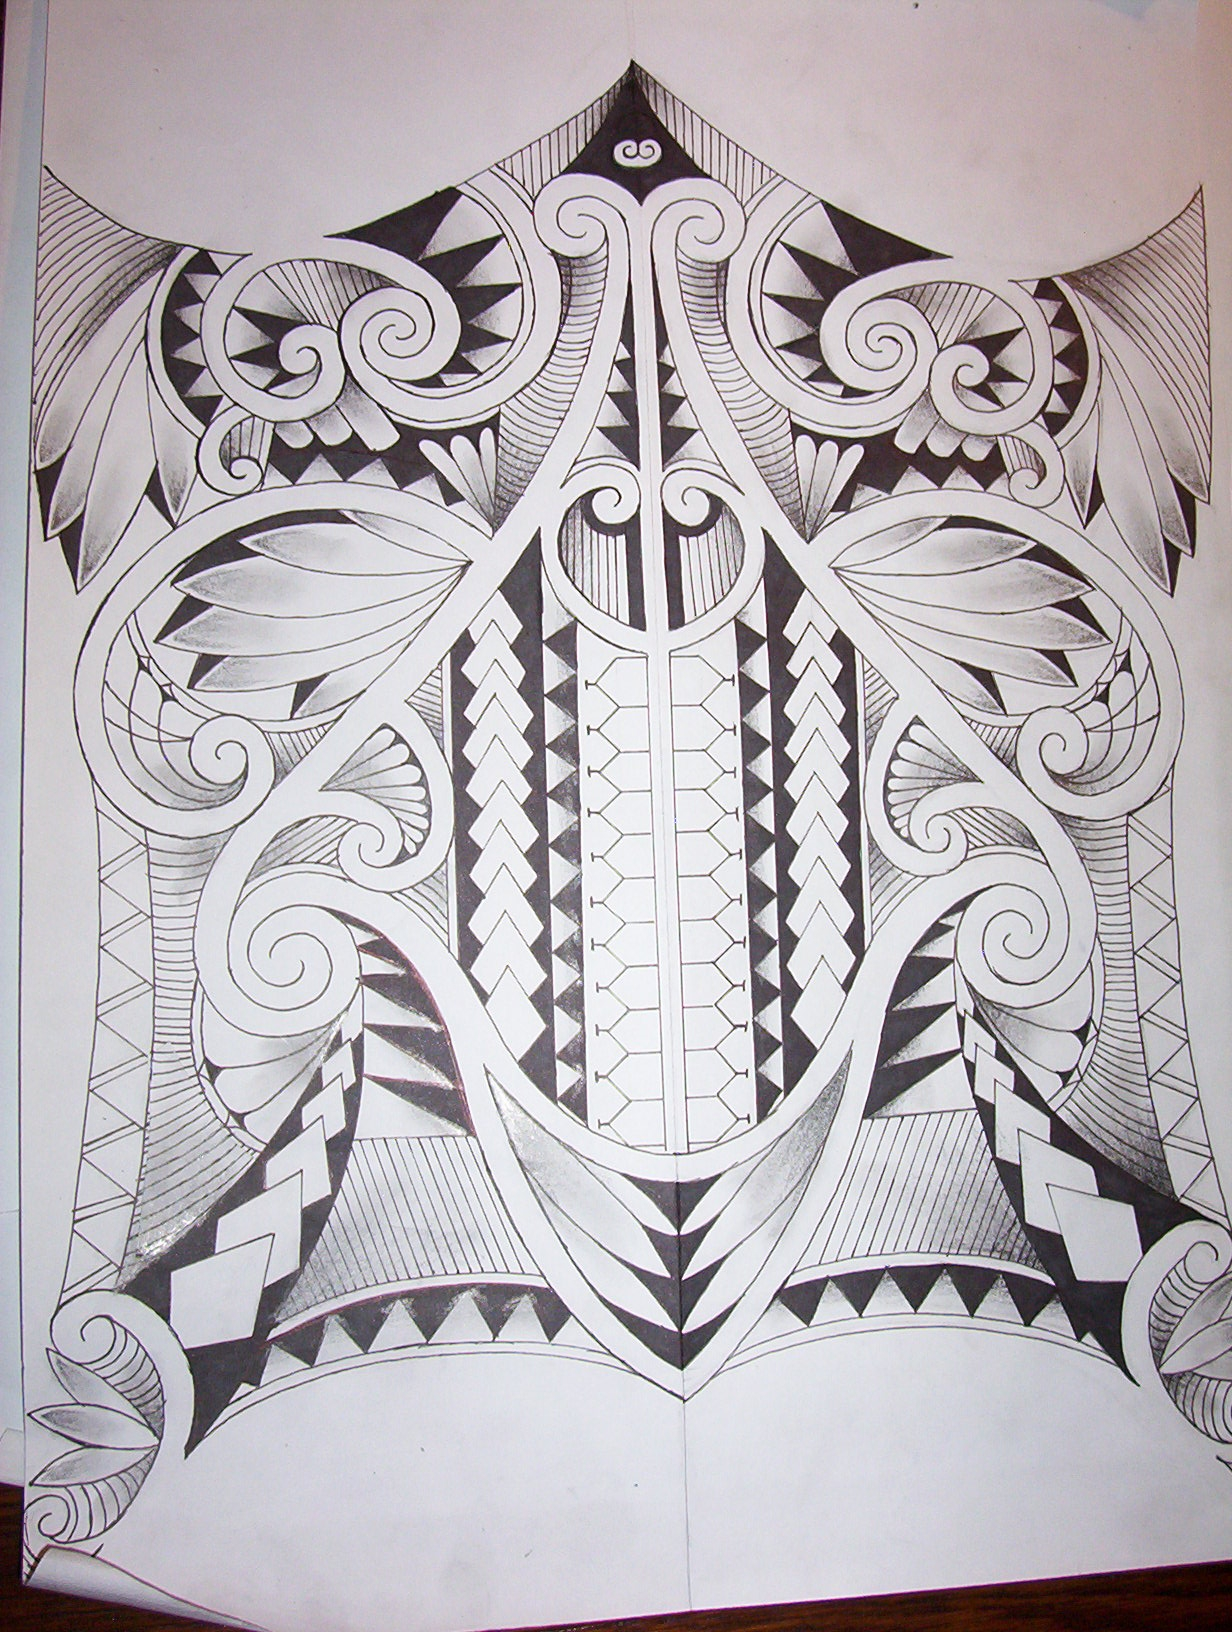 Body Art World Tattoos Maori Tattoo Art And Traditional: Maori Tattoo Design By Tattoosuzette On DeviantArt